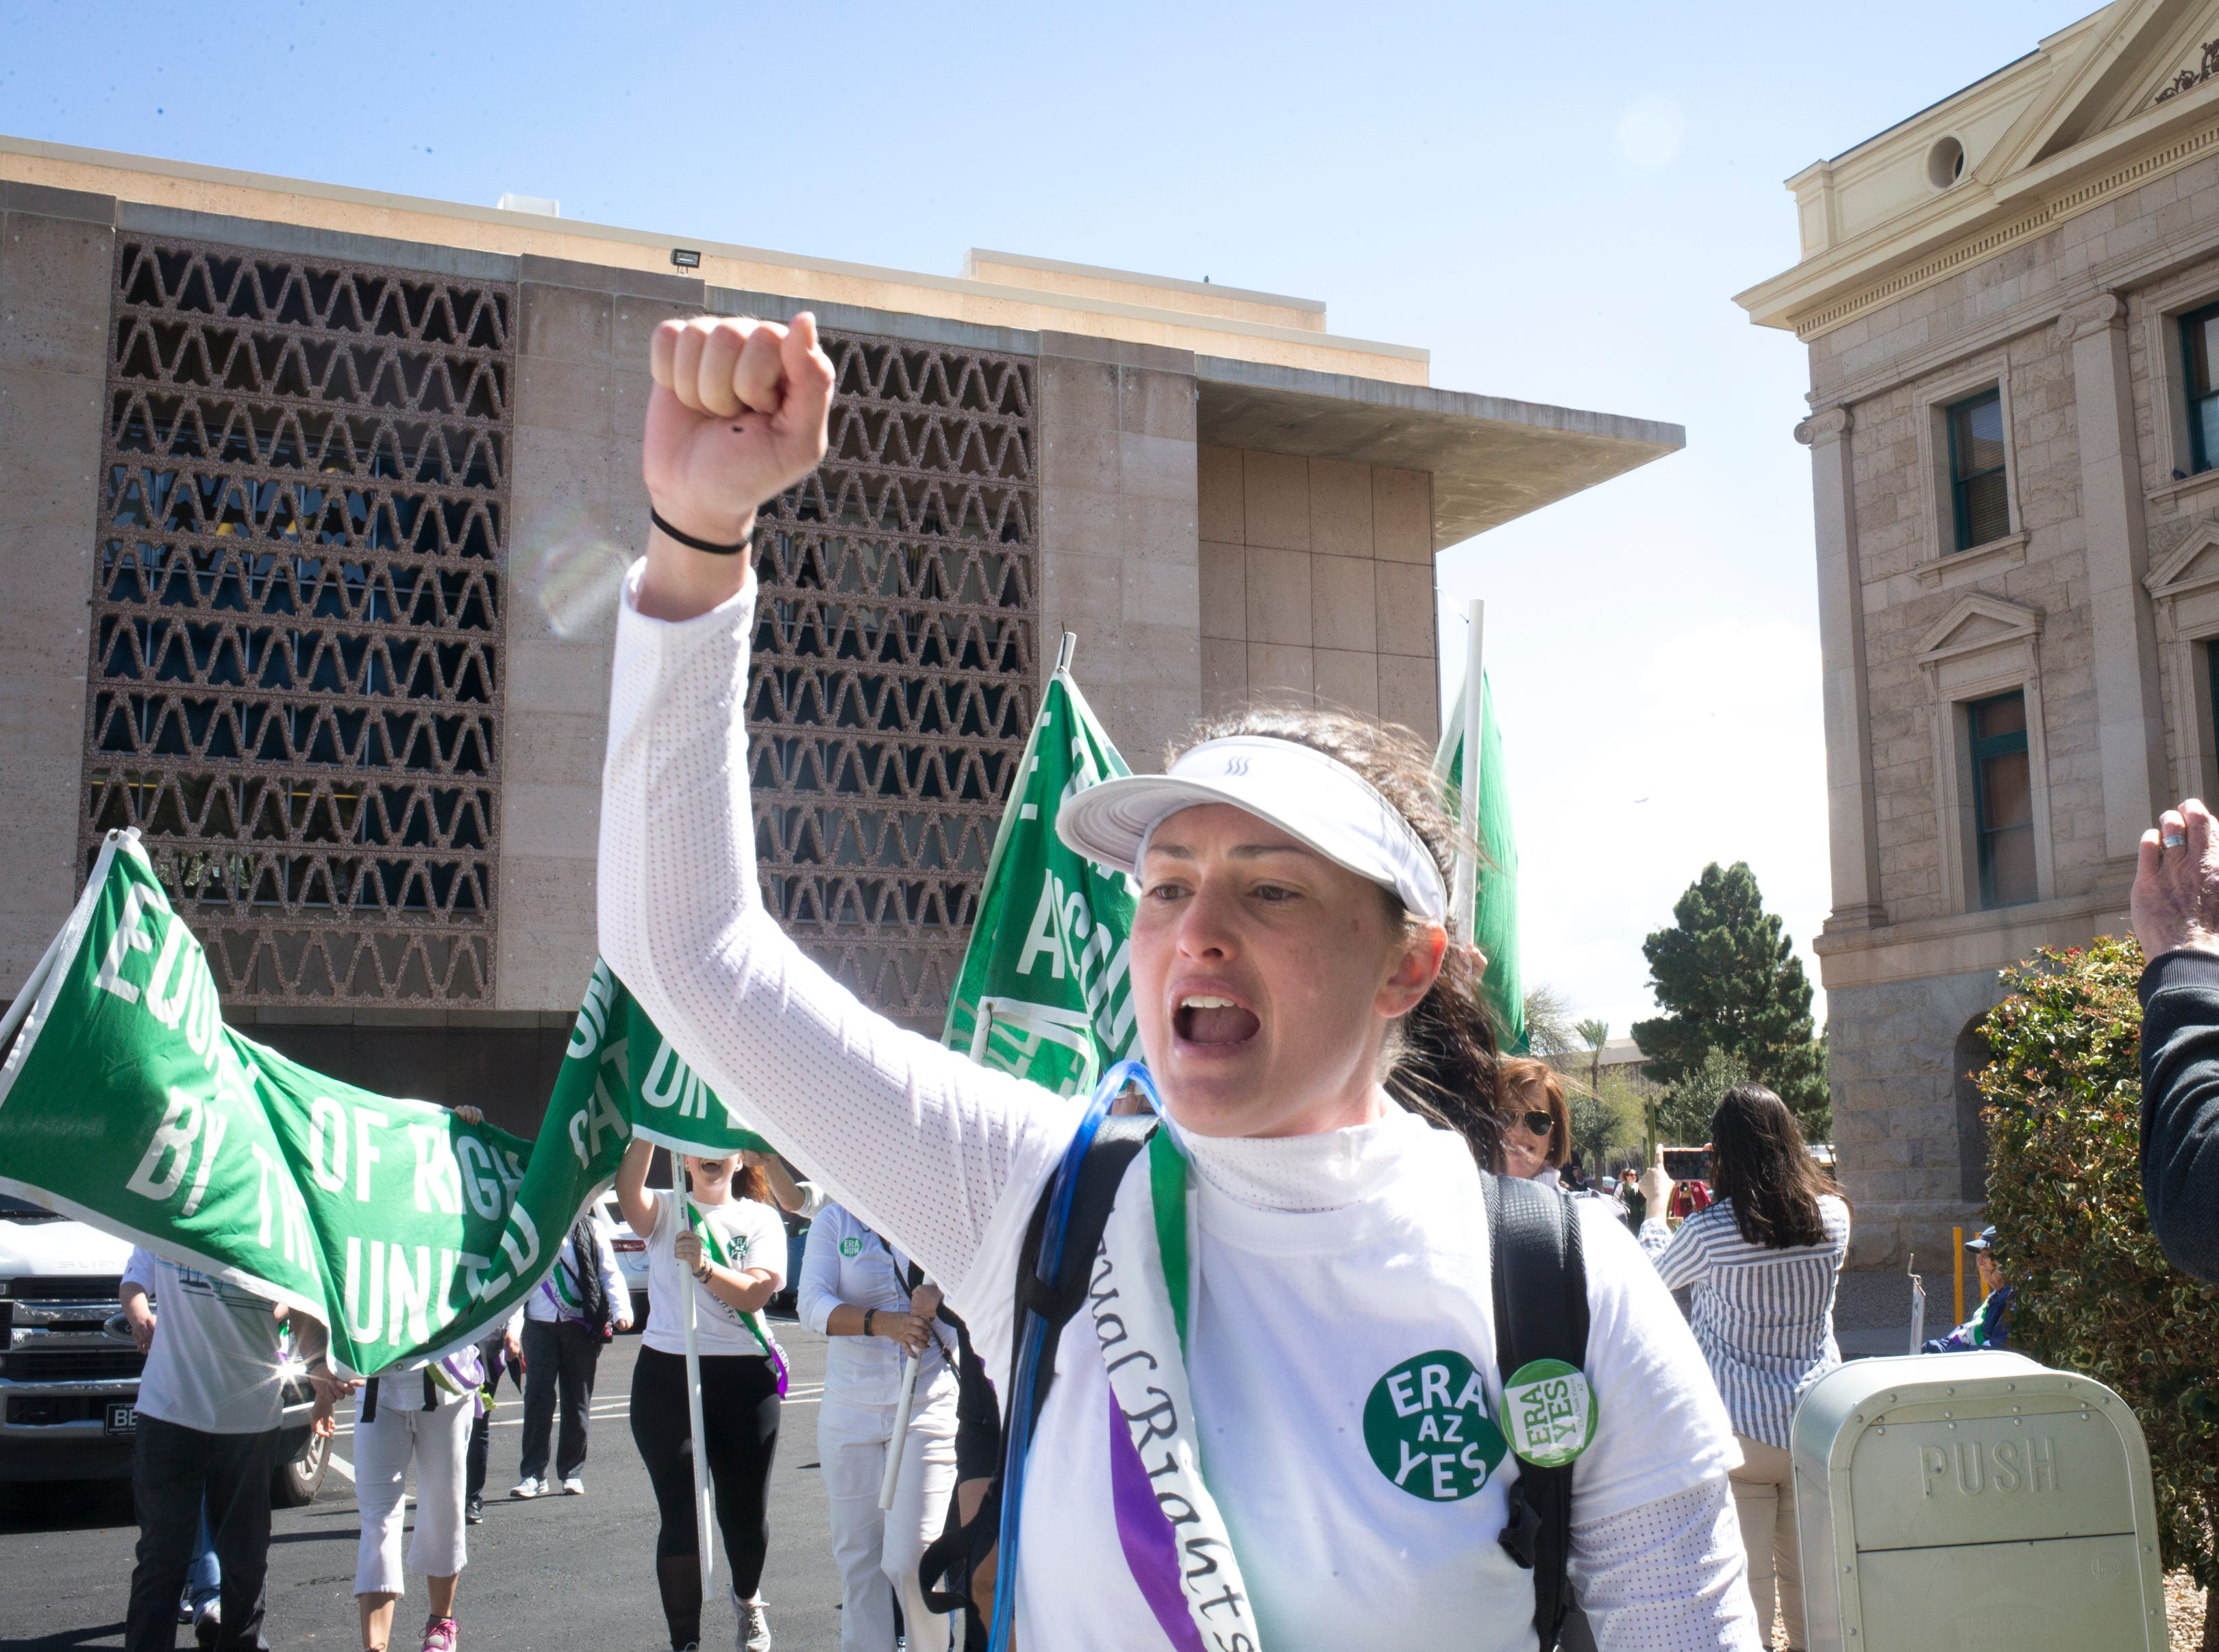 The ERA March arrives at the Arizona state Capitol March 13, 2019.